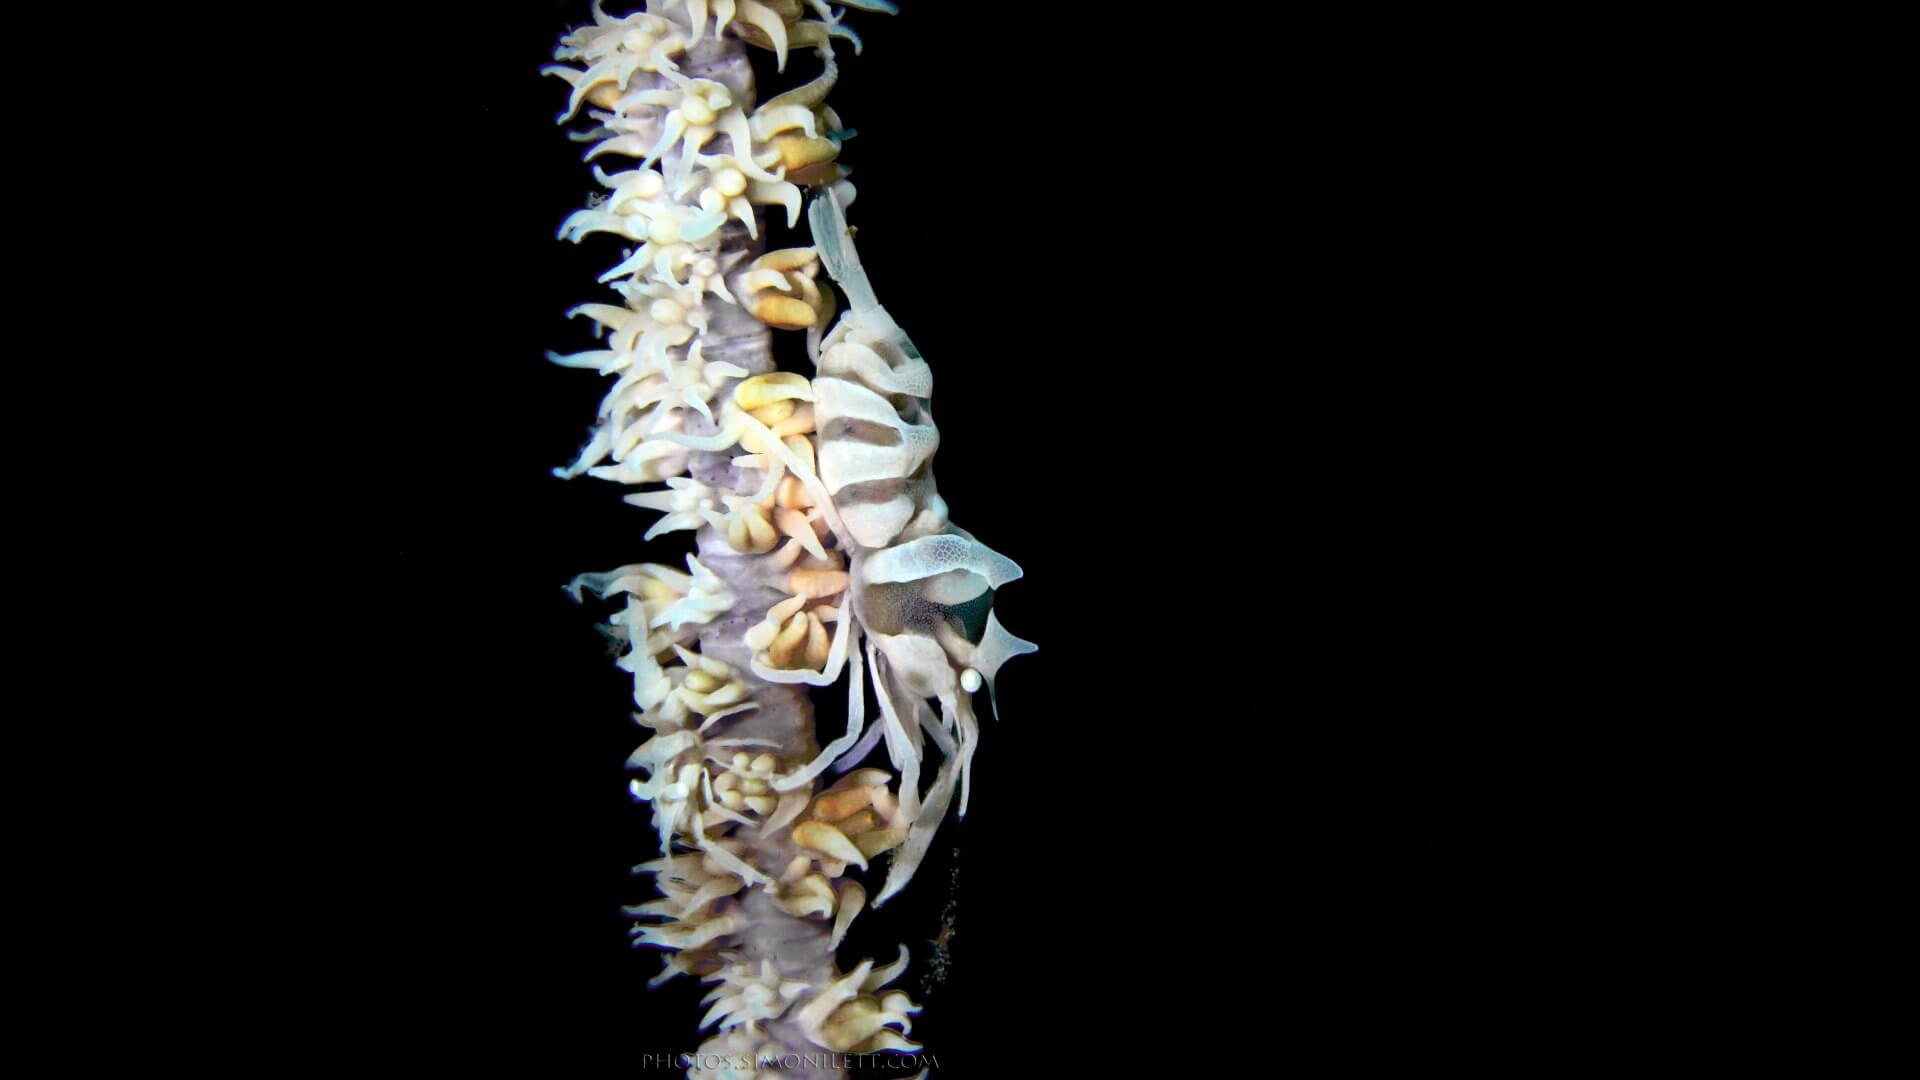 Commensal Whip Coral Shrimp Family